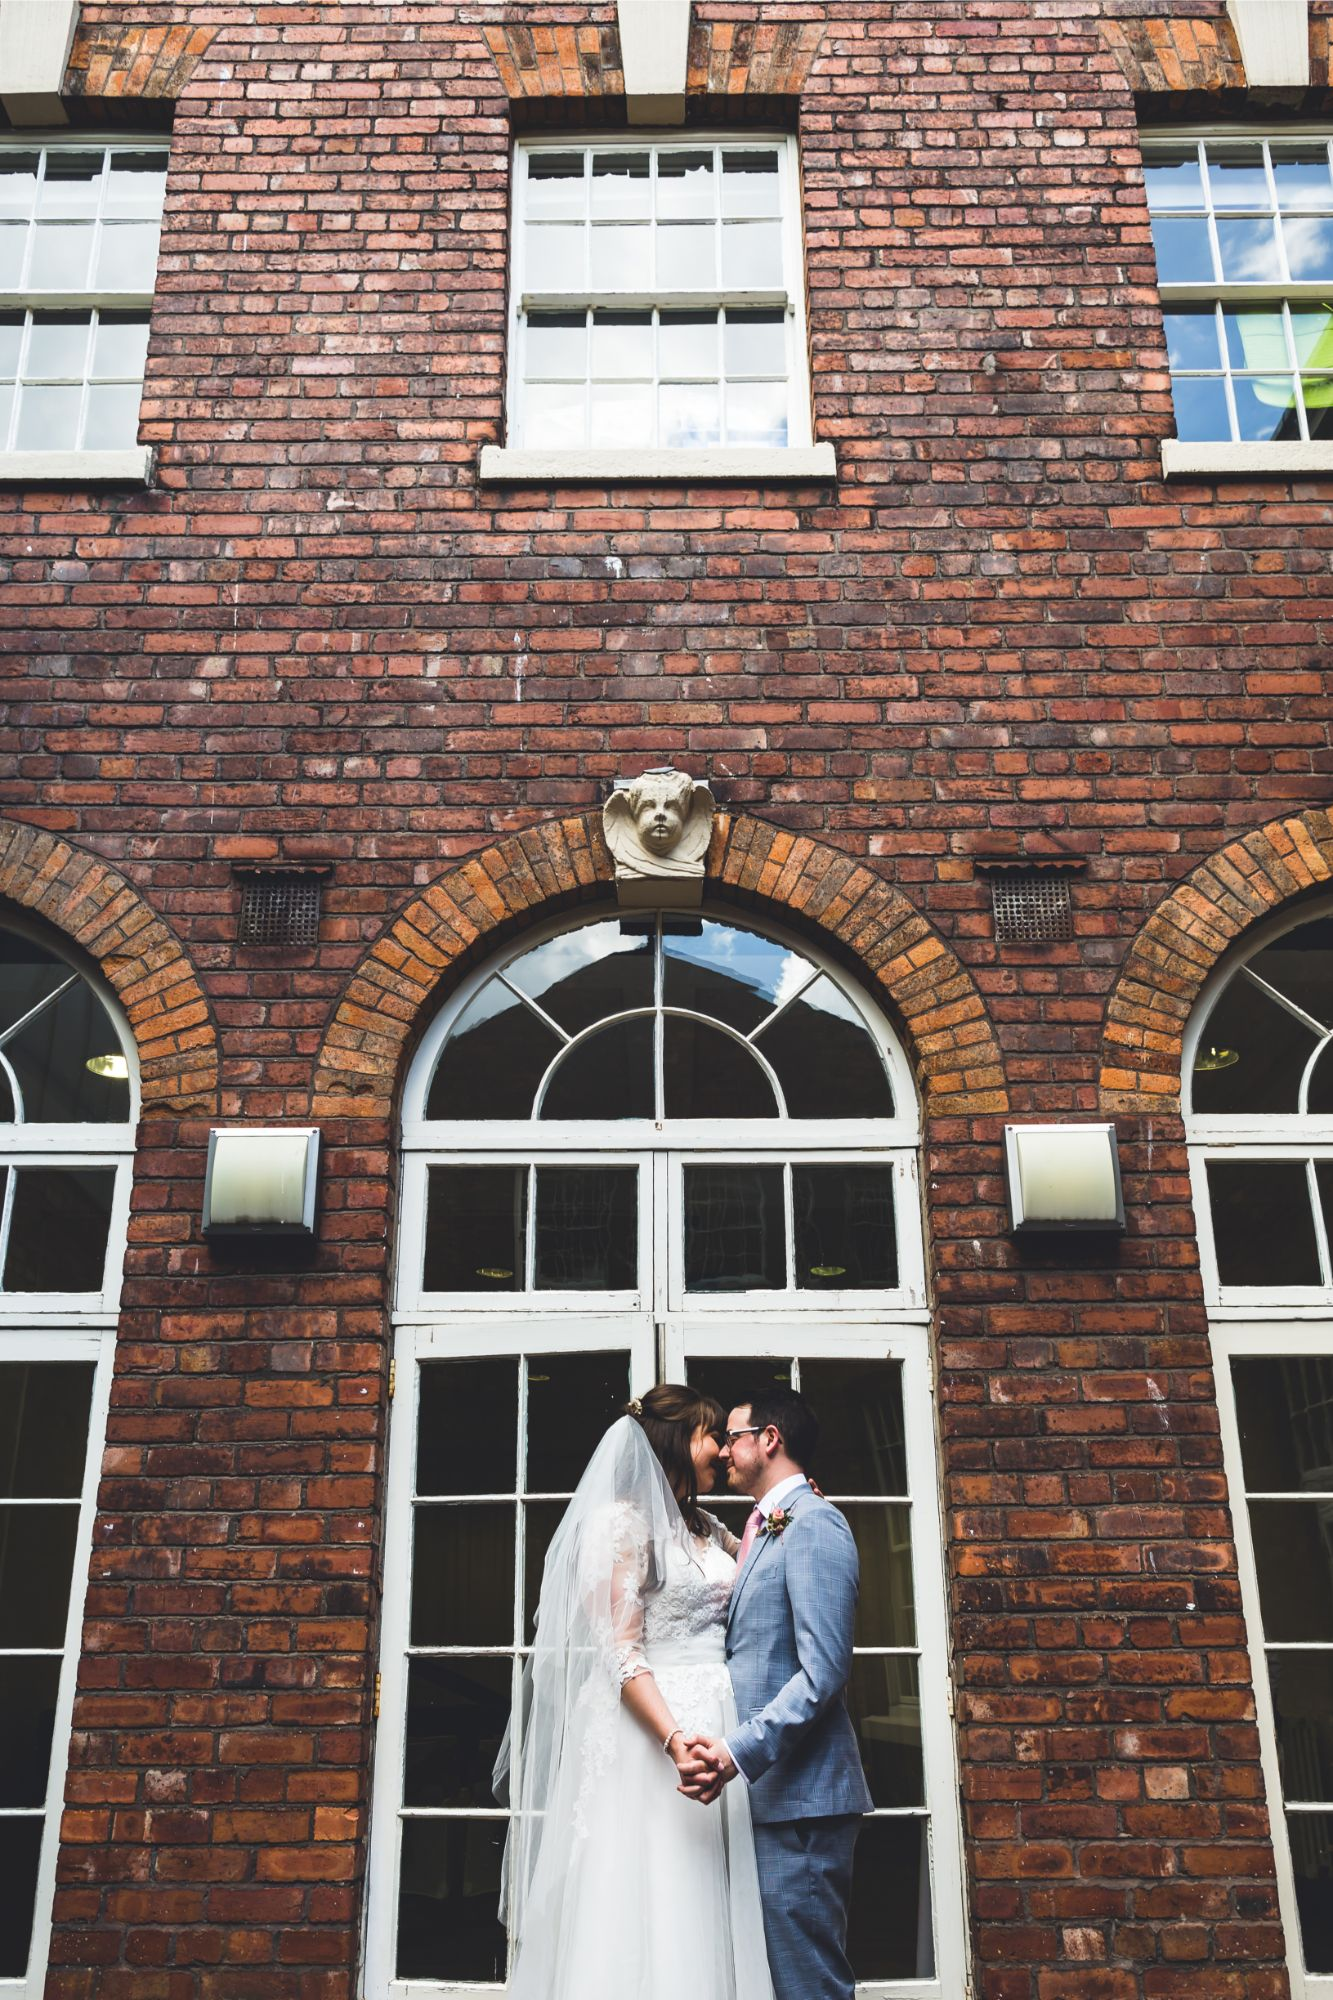 Bride and Groom wedding portrait in courtyard of Bluecoat Liverpool